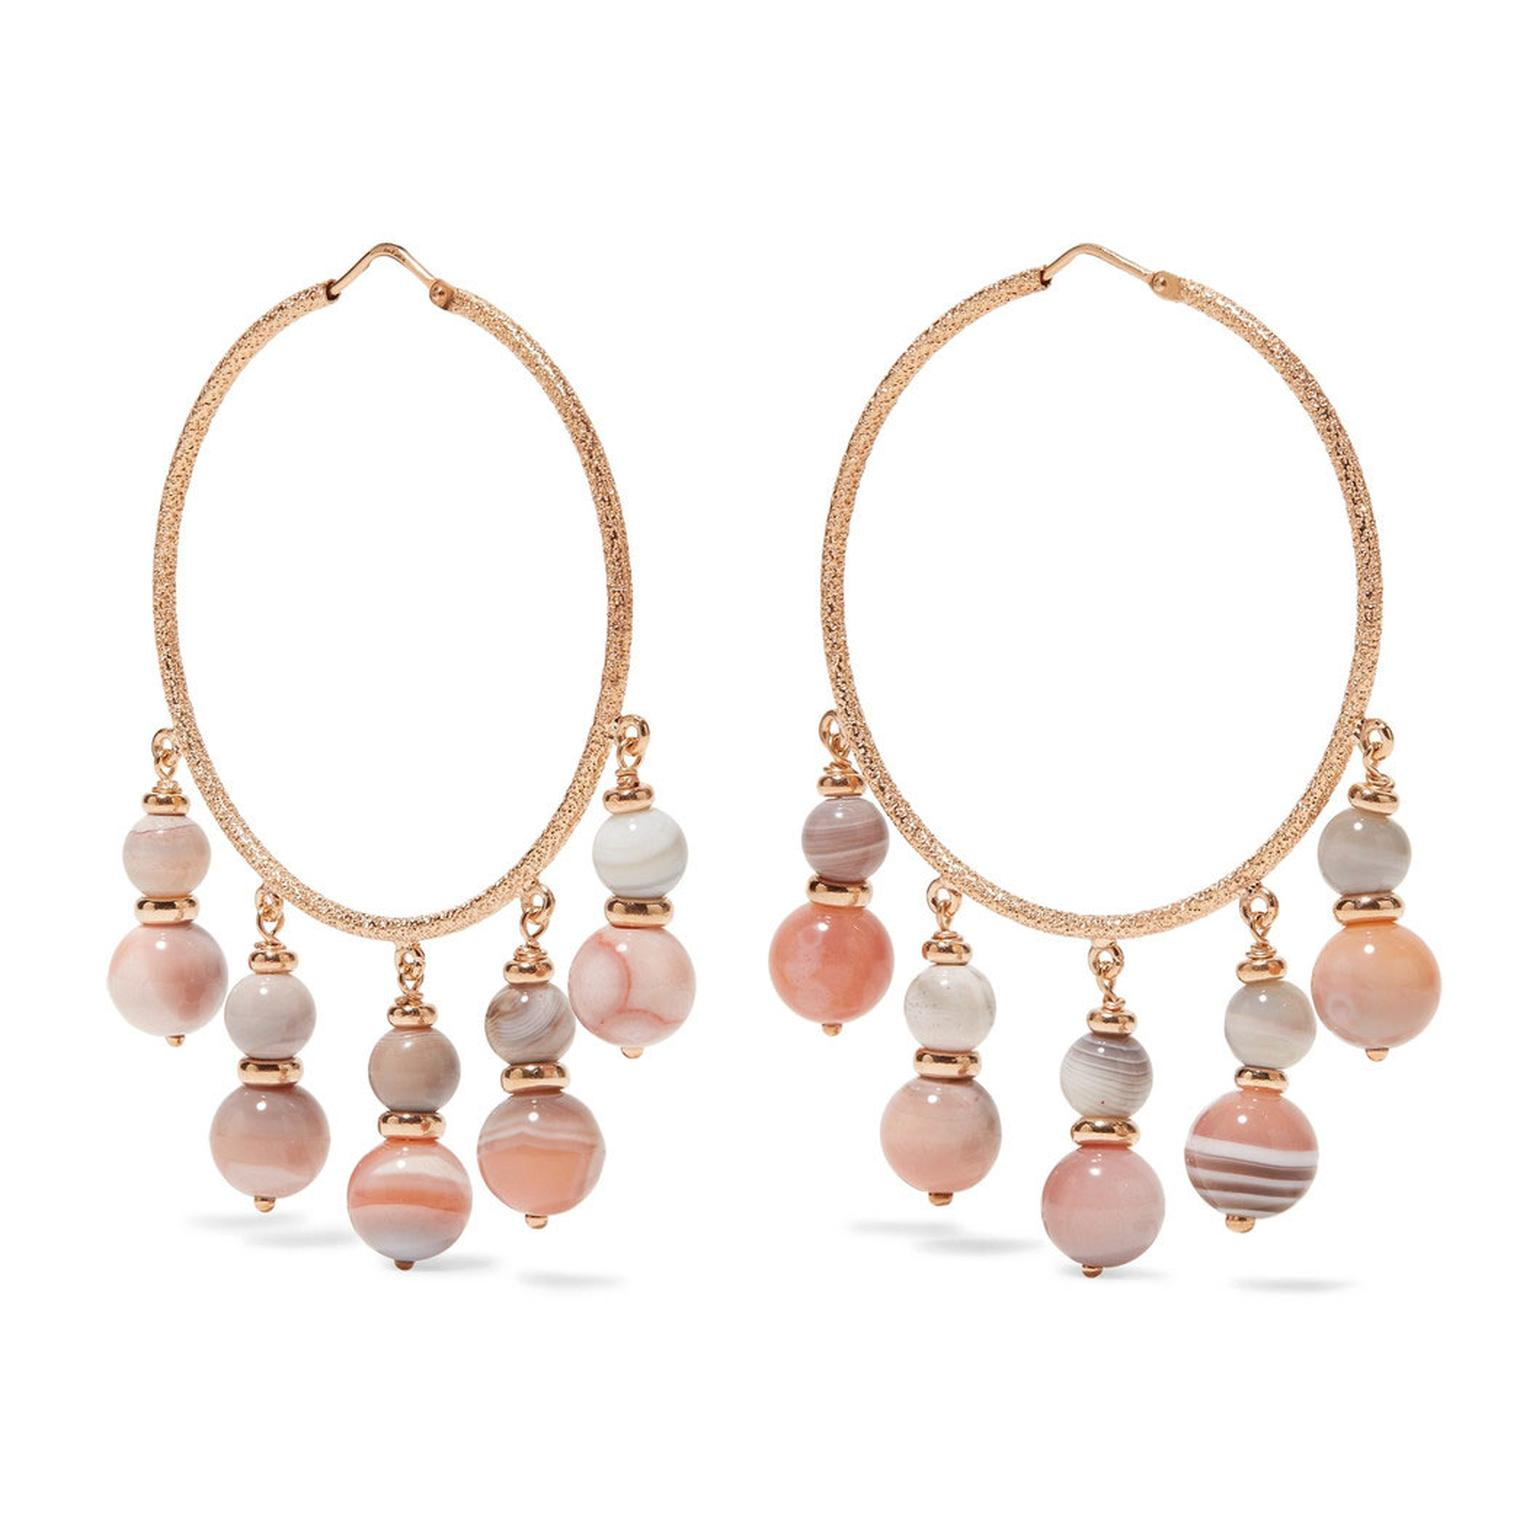 Carolina Bucci recharmed rose gold and agate hoop earrings